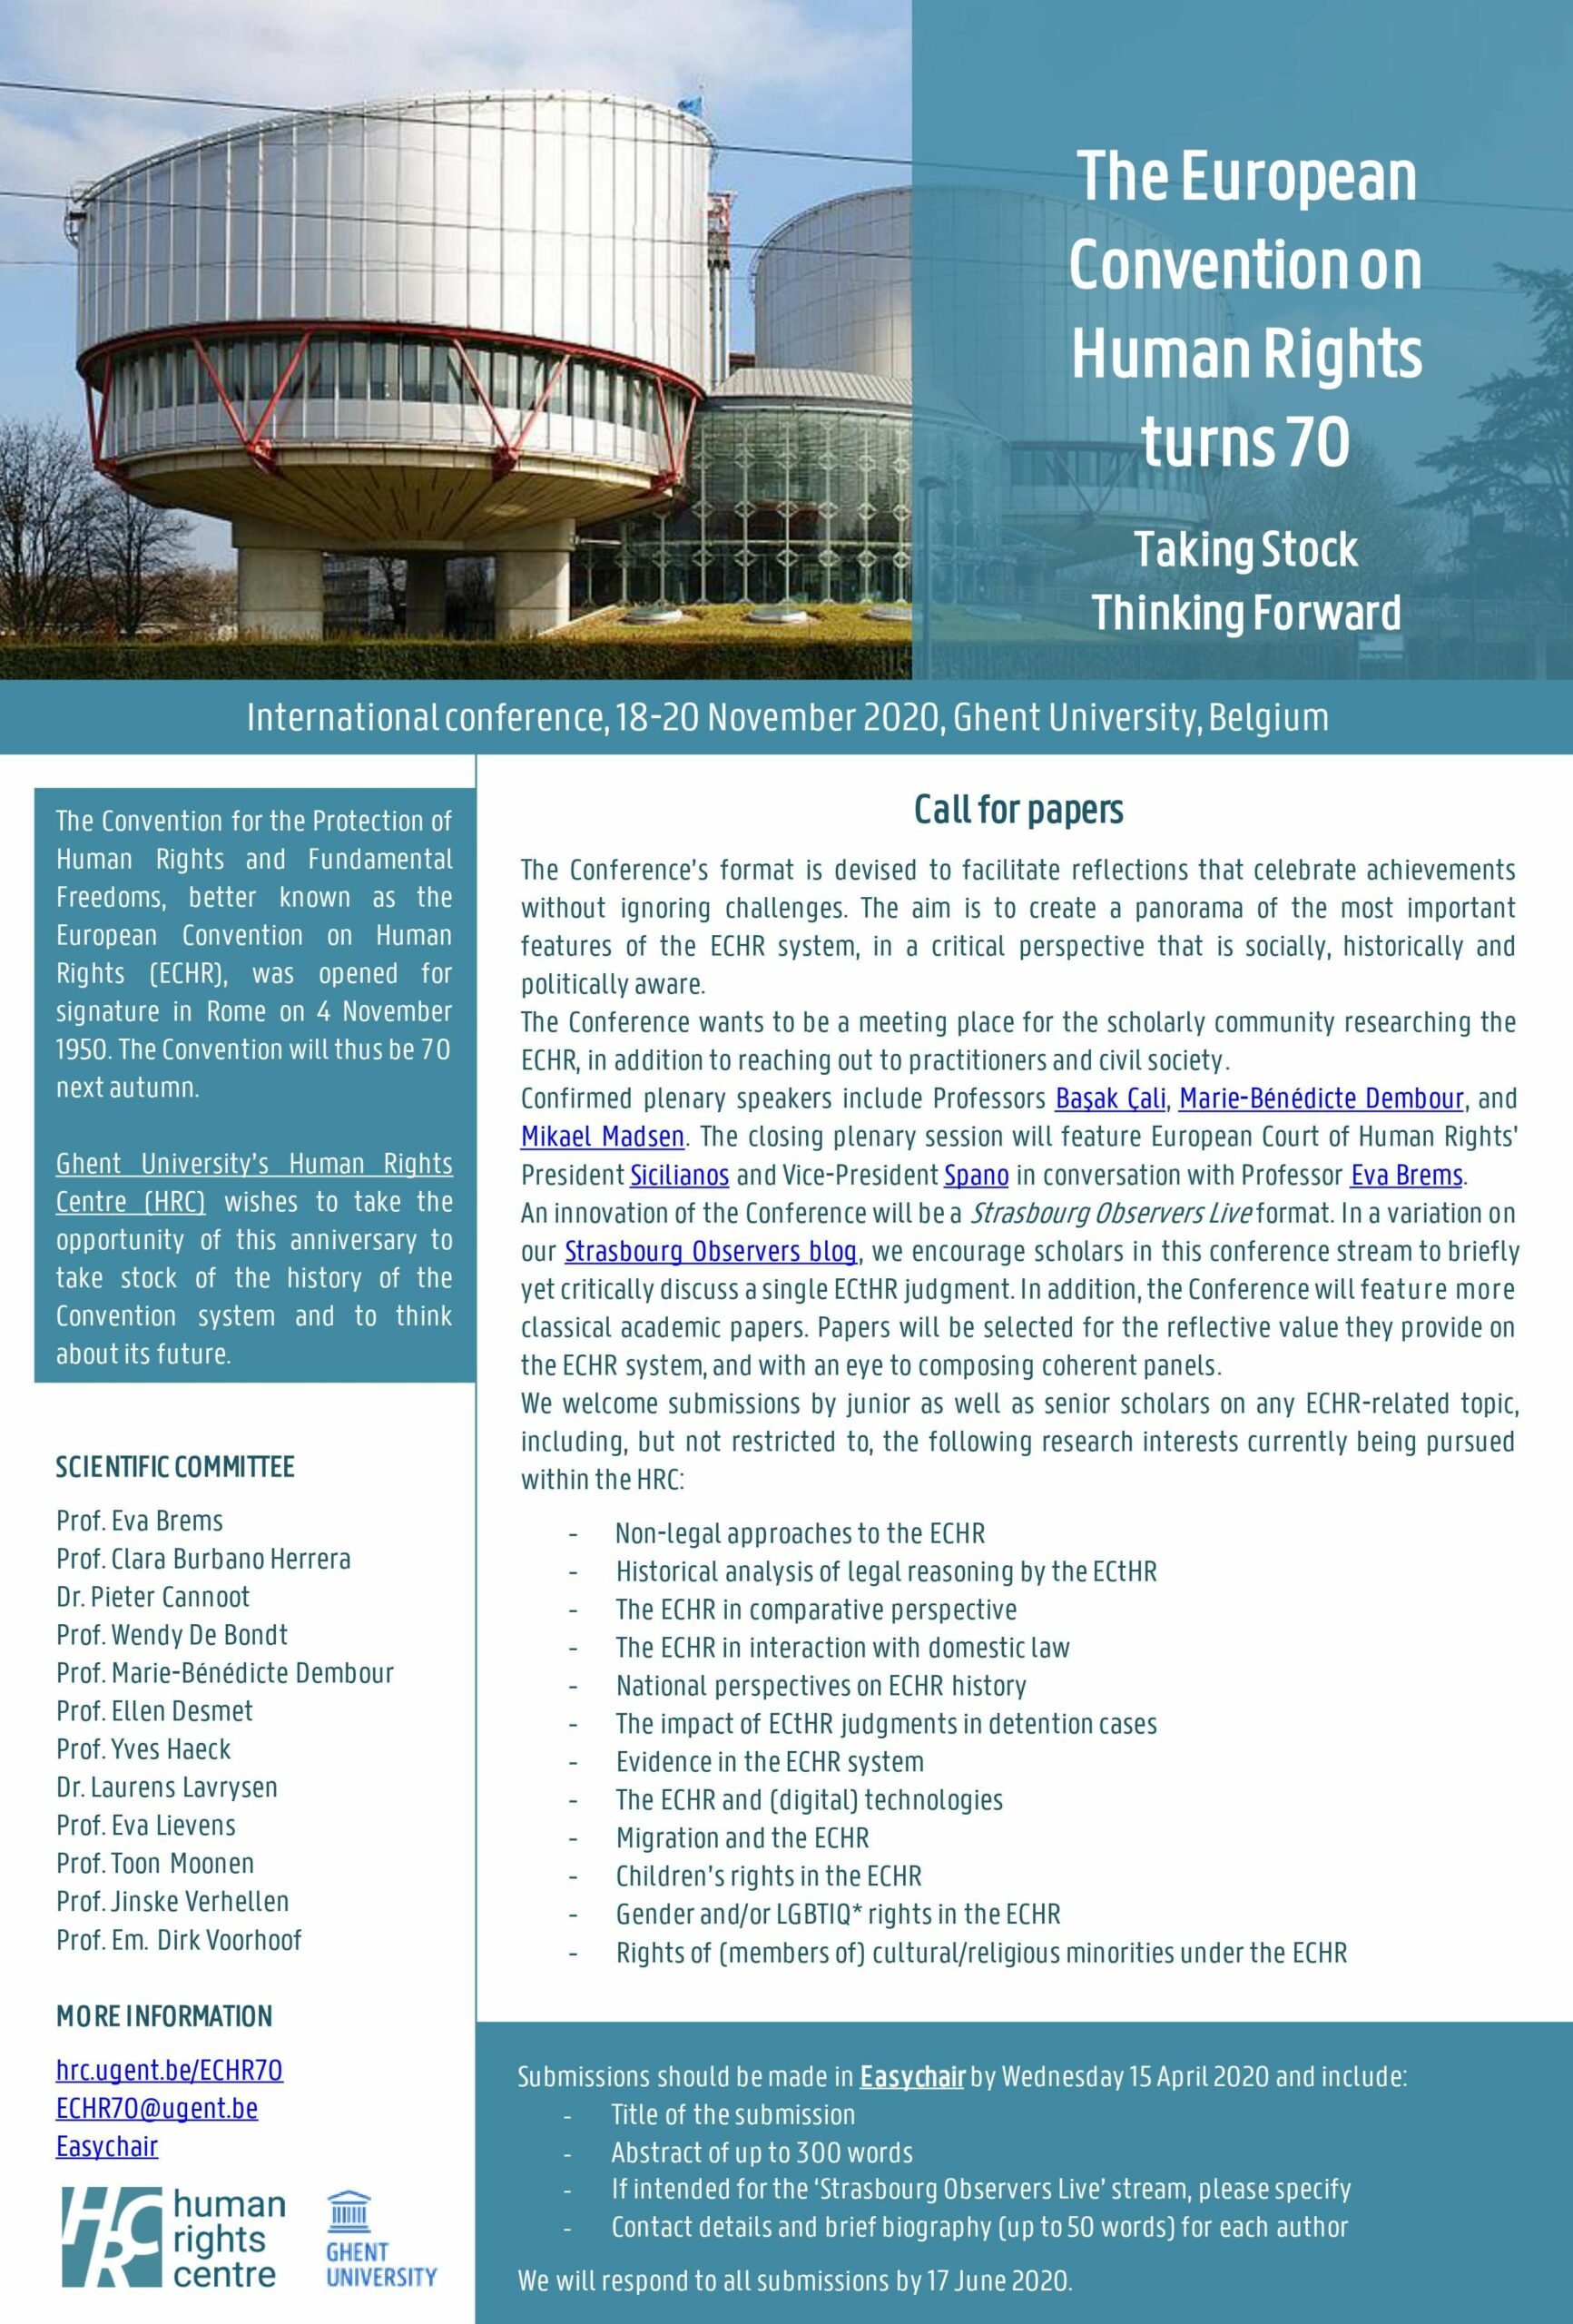 Call for papers update